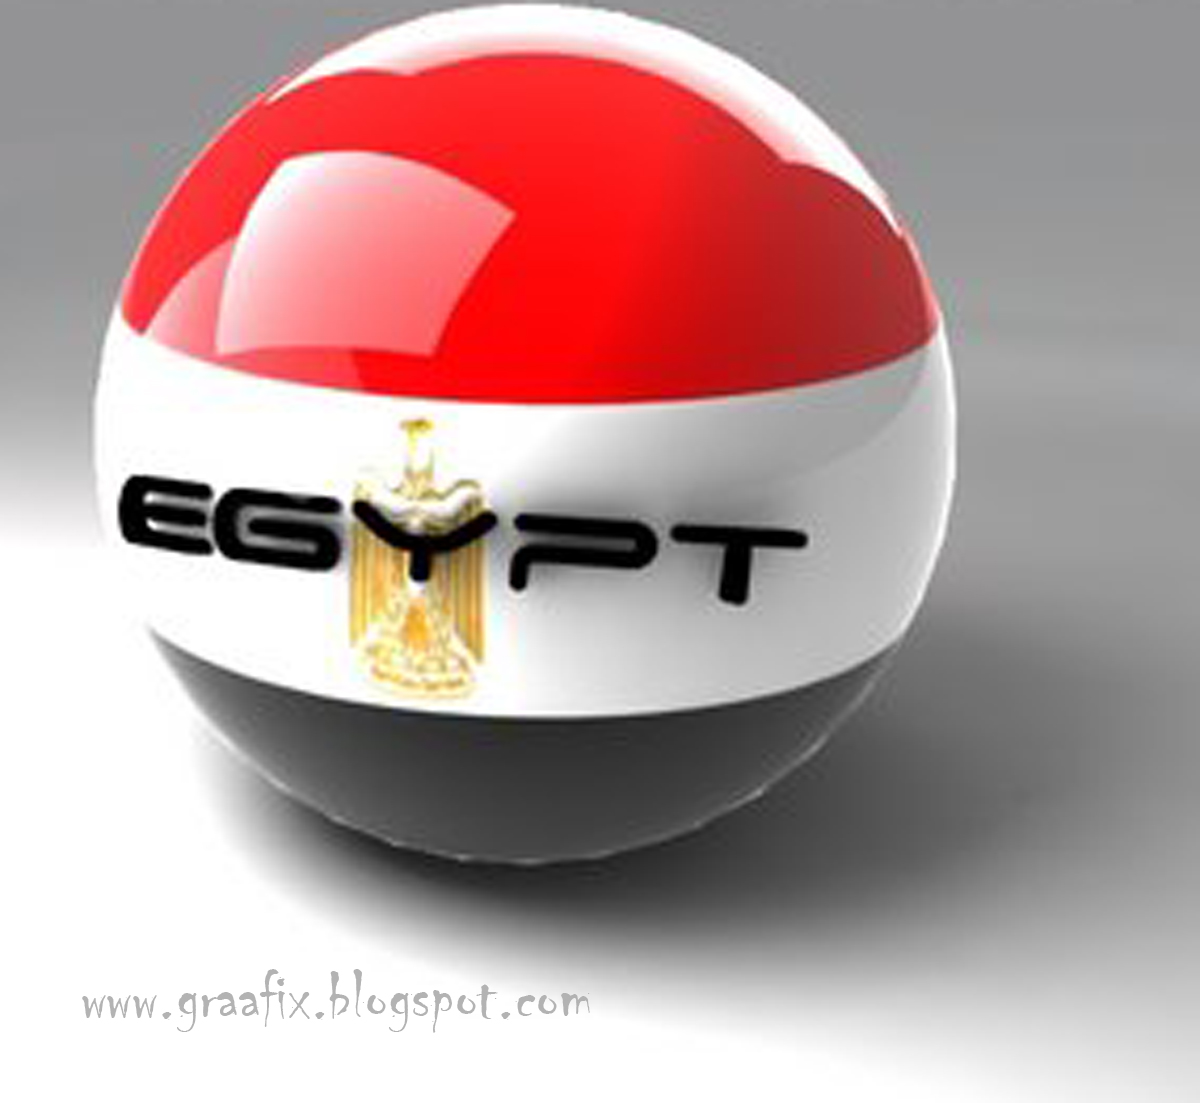 Download free Nokia N egypt wallpapers by relevance Zedge